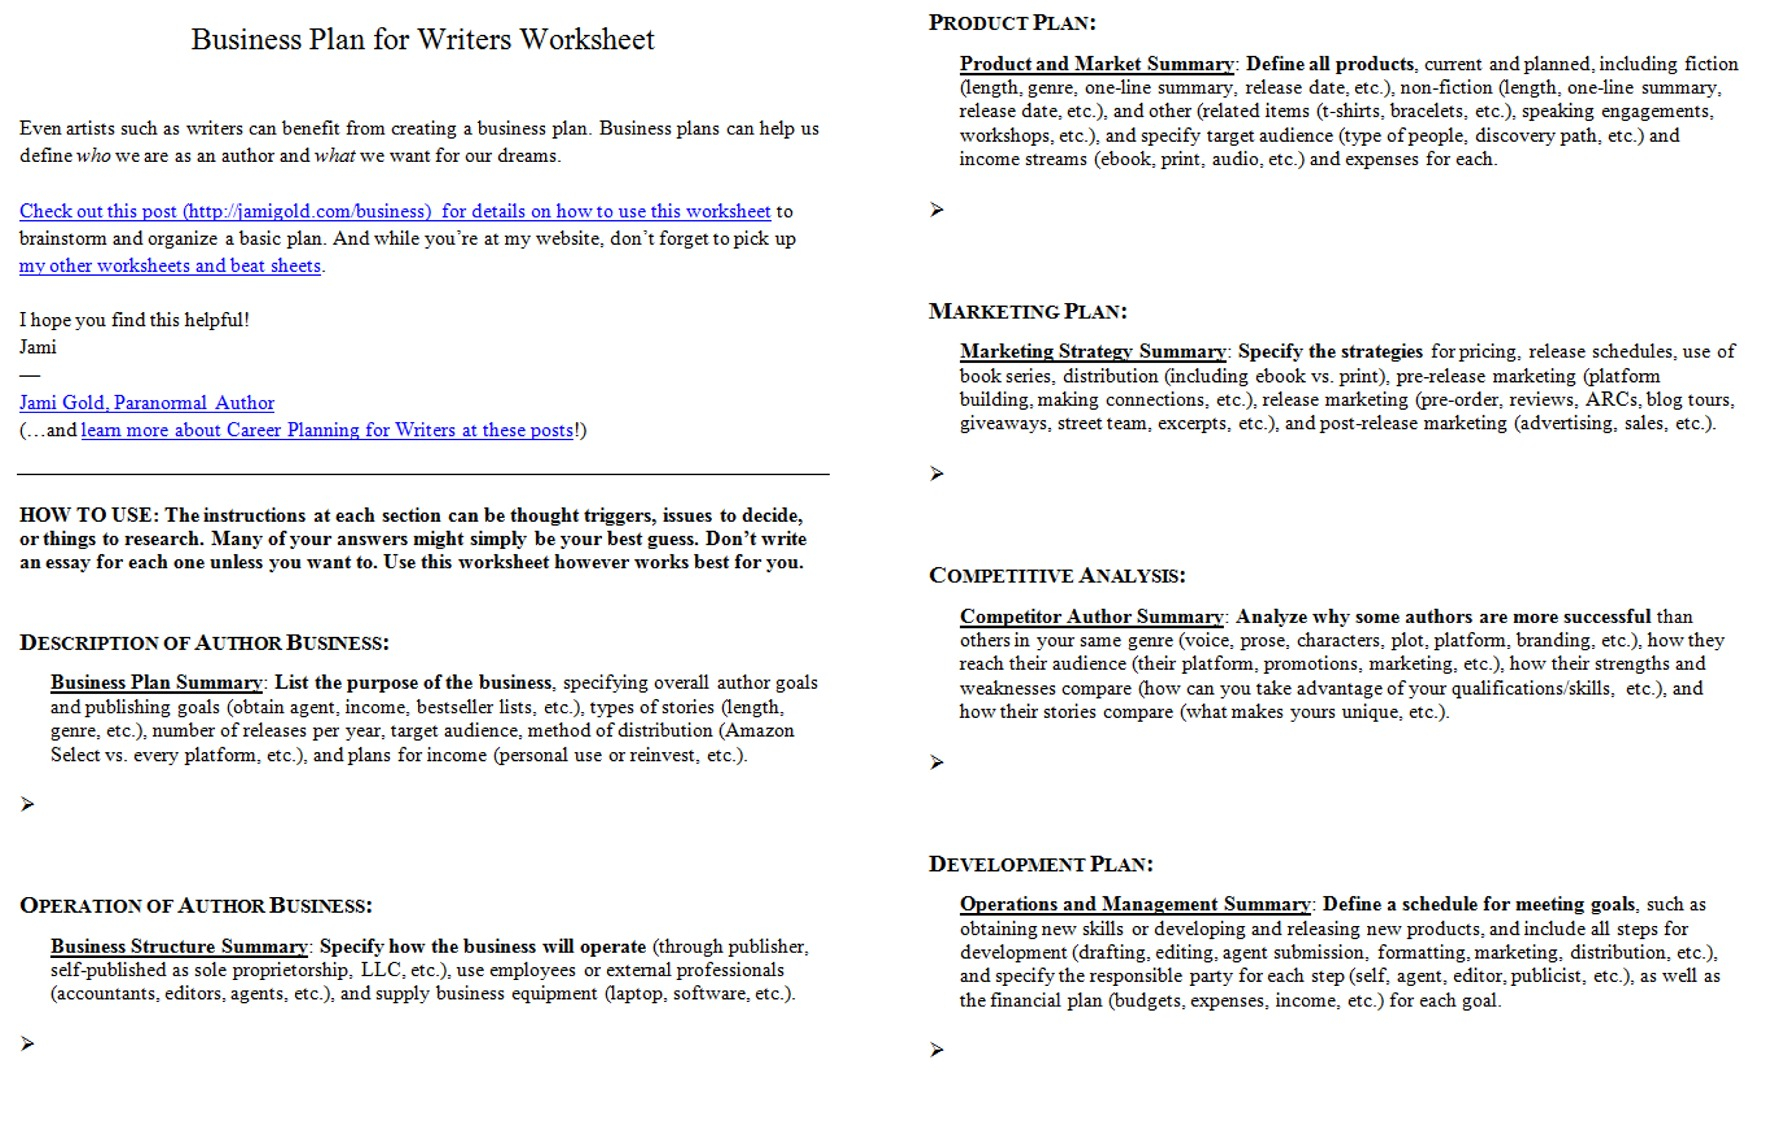 Weirdmailus  Unique Worksheets For Writers  Jami Gold Paranormal Author With Excellent Screen Shot Of Both Pages Of The Business Plan For Writers Worksheet With Appealing Worksheet For Nouns Also Learning To Write Name Worksheet In Addition Preschool Grammar Worksheets And Relative Clause Worksheets As Well As Grade  Math Multiplication Worksheets Additionally Money Learning Worksheets From Jamigoldcom With Weirdmailus  Excellent Worksheets For Writers  Jami Gold Paranormal Author With Appealing Screen Shot Of Both Pages Of The Business Plan For Writers Worksheet And Unique Worksheet For Nouns Also Learning To Write Name Worksheet In Addition Preschool Grammar Worksheets From Jamigoldcom